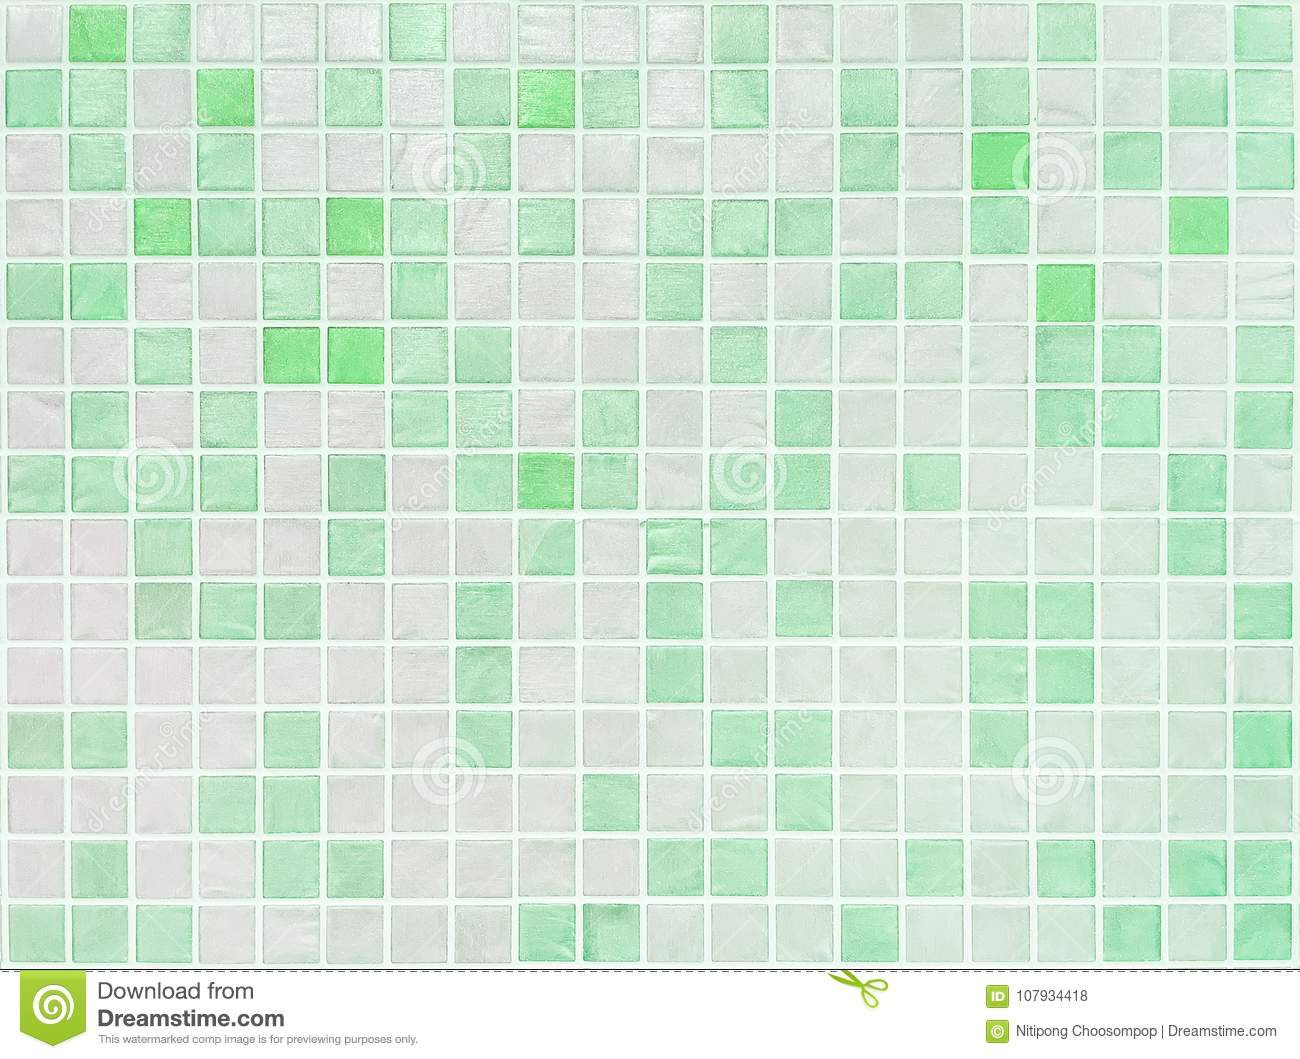 Closeup Surface Tiles Pattern At Green Tiles In Bathroom Wall Texture Background Stock Photo Image Of Interior Crystal 107934418